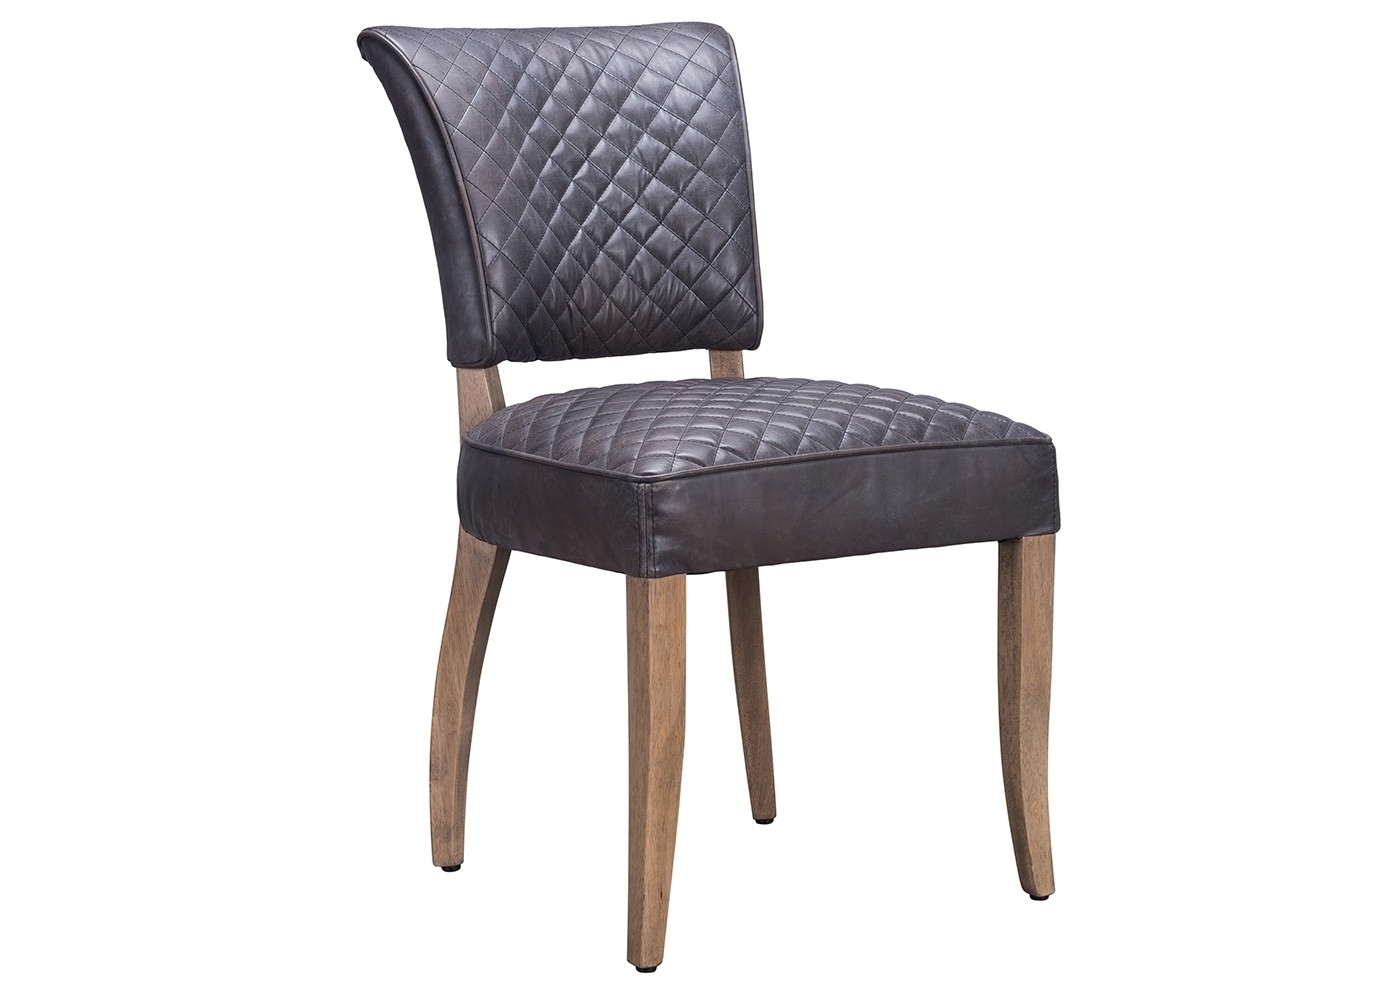 Inspiration about Most Current Quilted Black Dining Chairs Inside Timothy Oulton Mimi Quilt Dining Chair Destroyed Black Leather (#6 of 20)